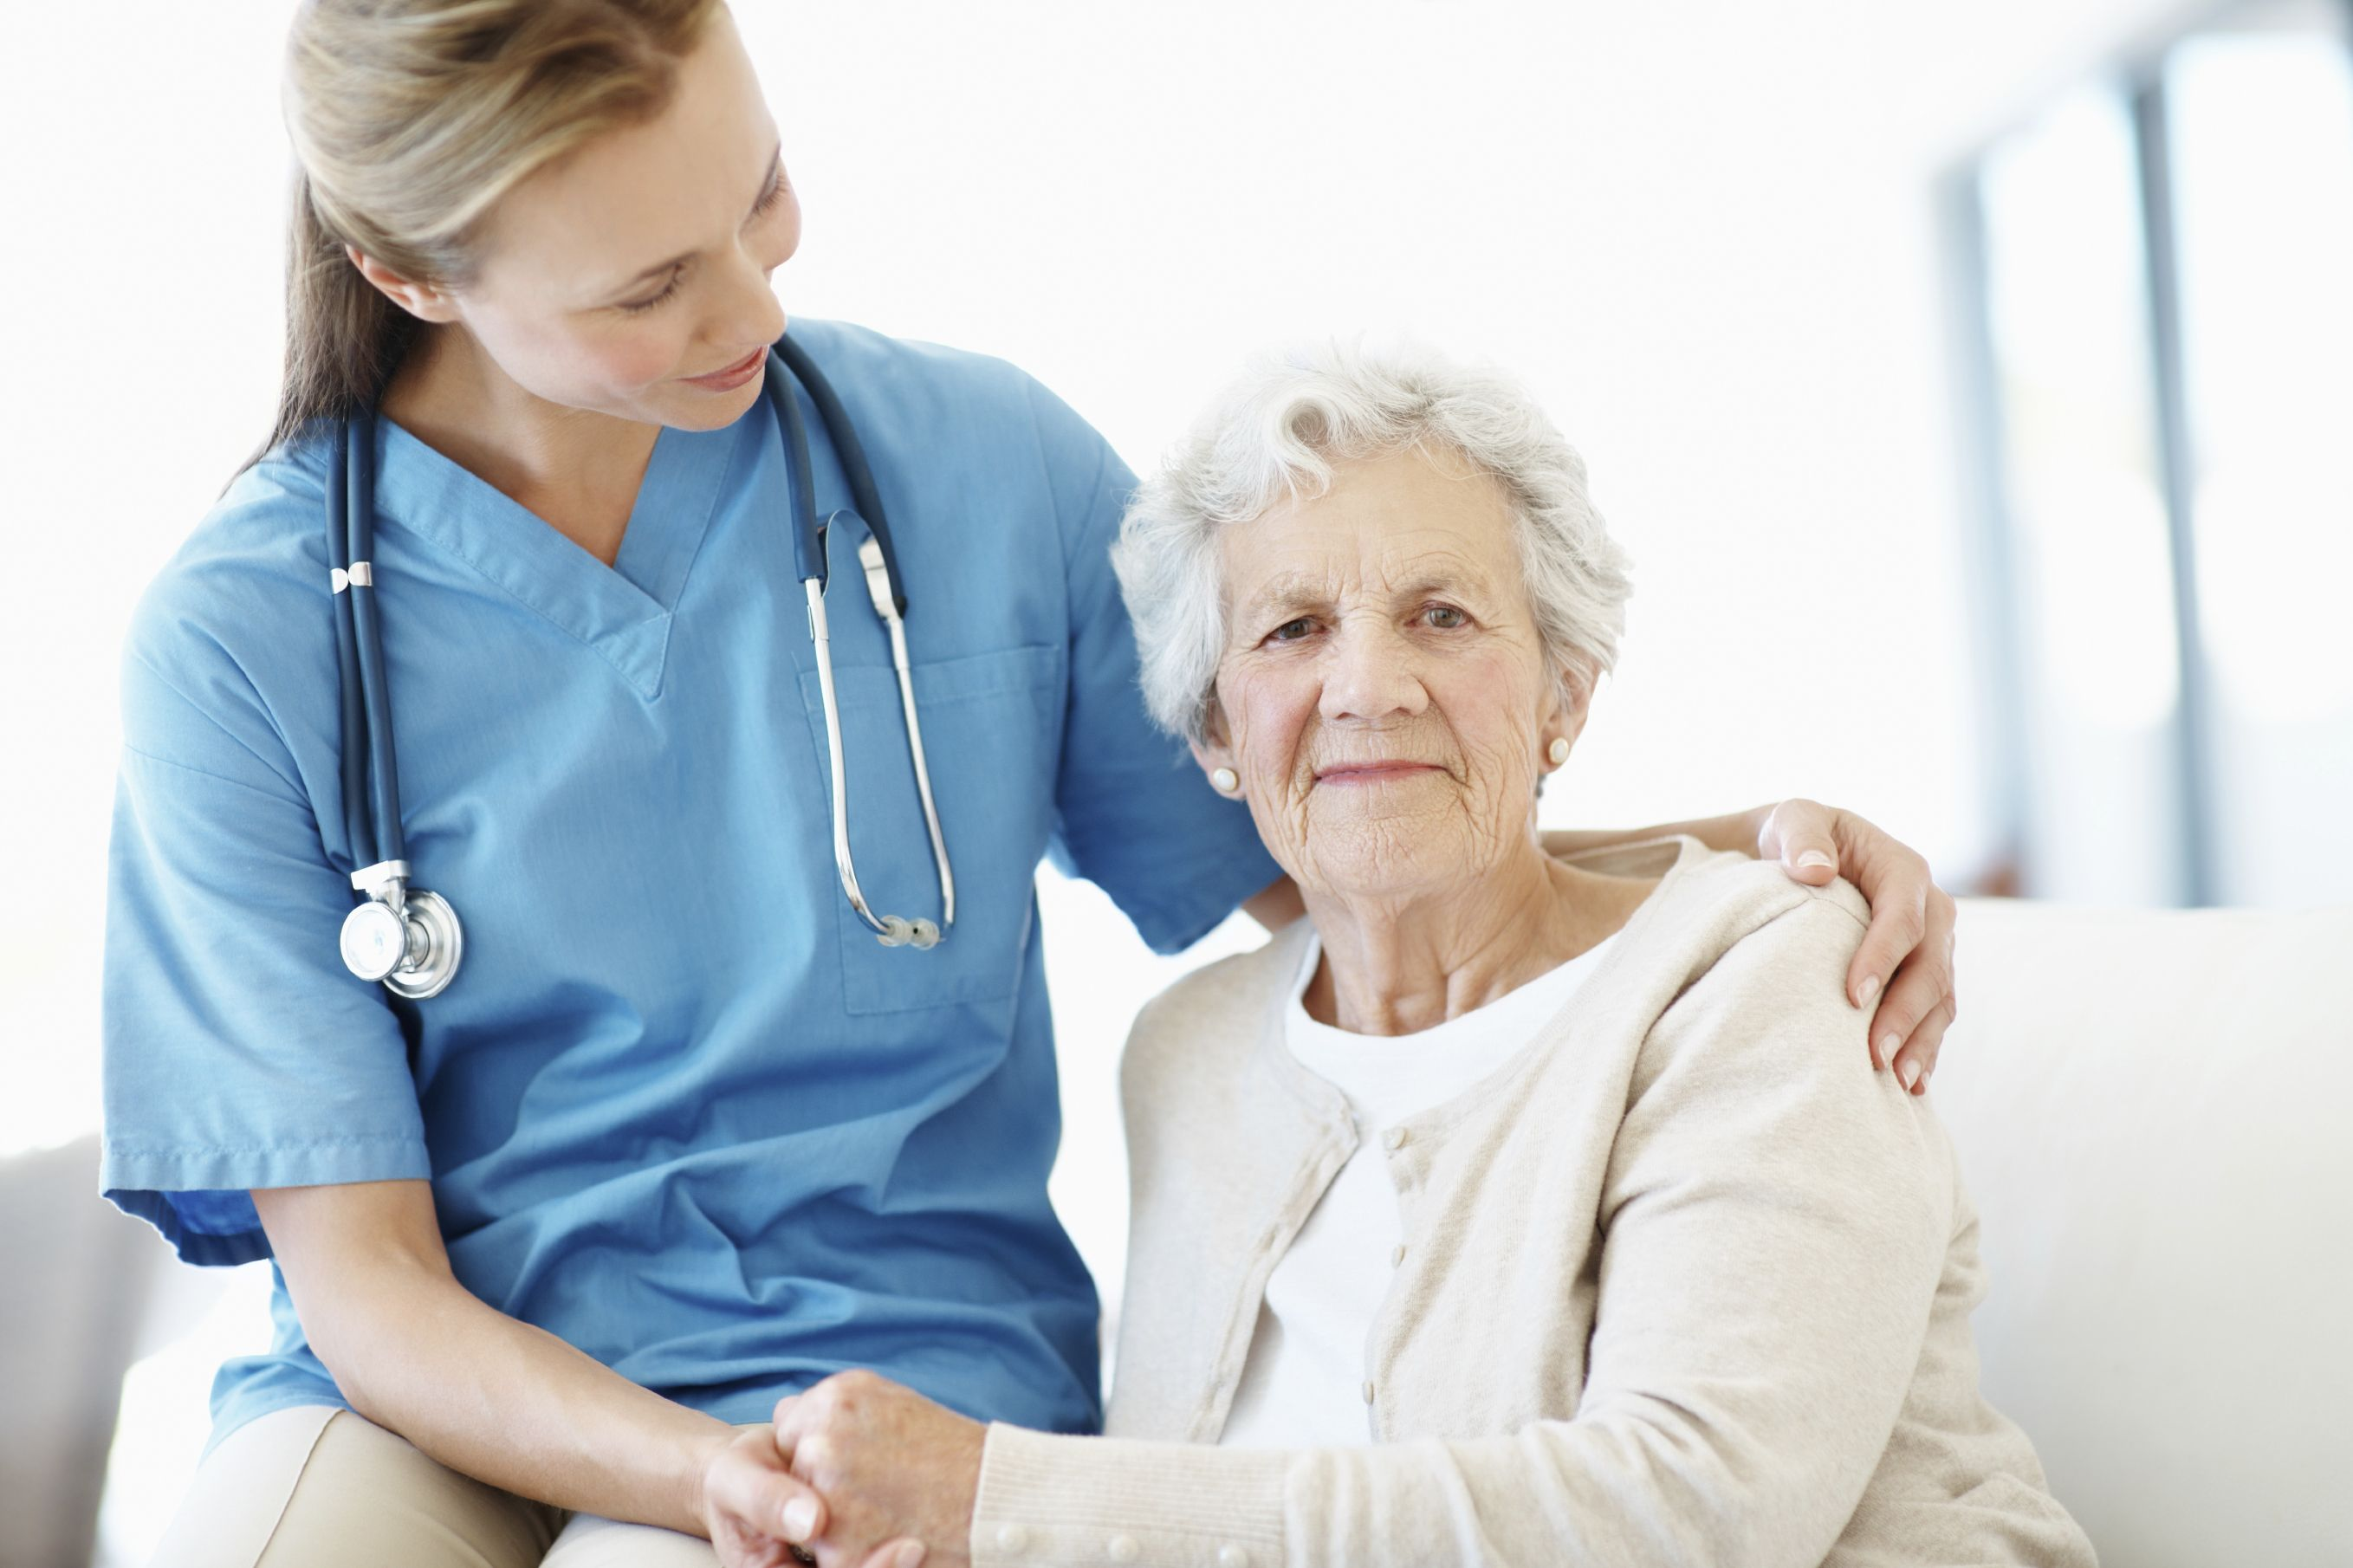 Problems For Nursing Homes Elderly Elopement And Wandering The